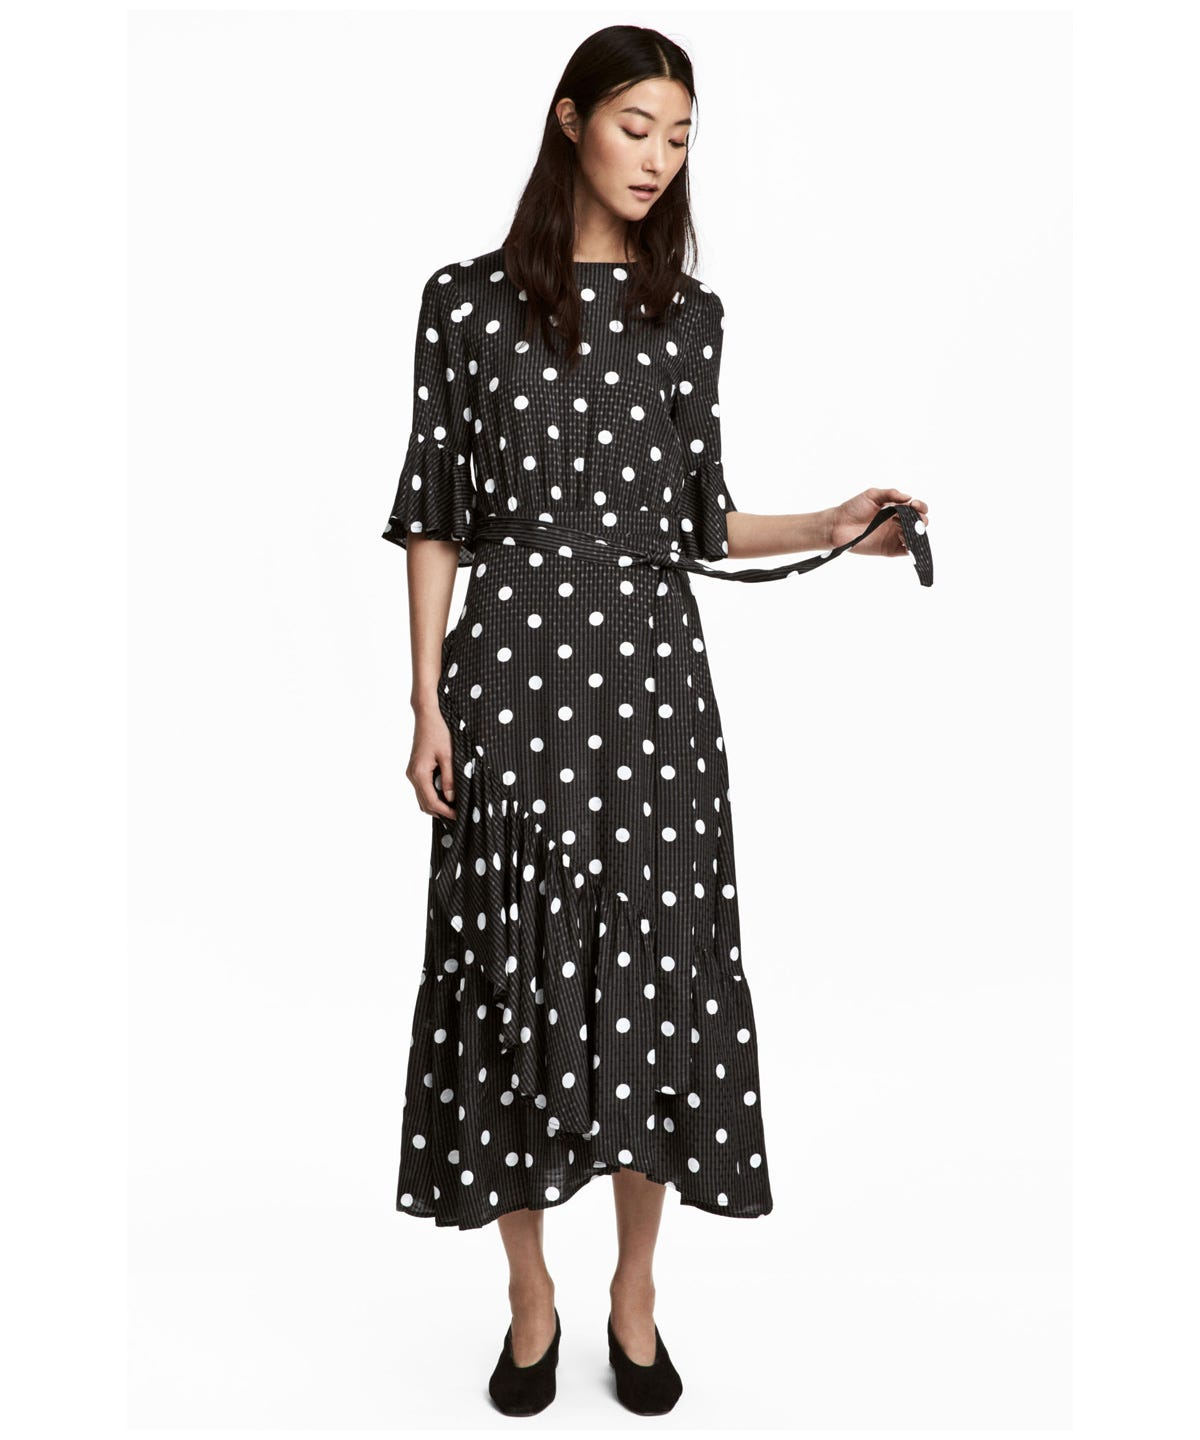 3219a1865bcf Cute Ways To Wear The Polka Dot Trend Winter 2018